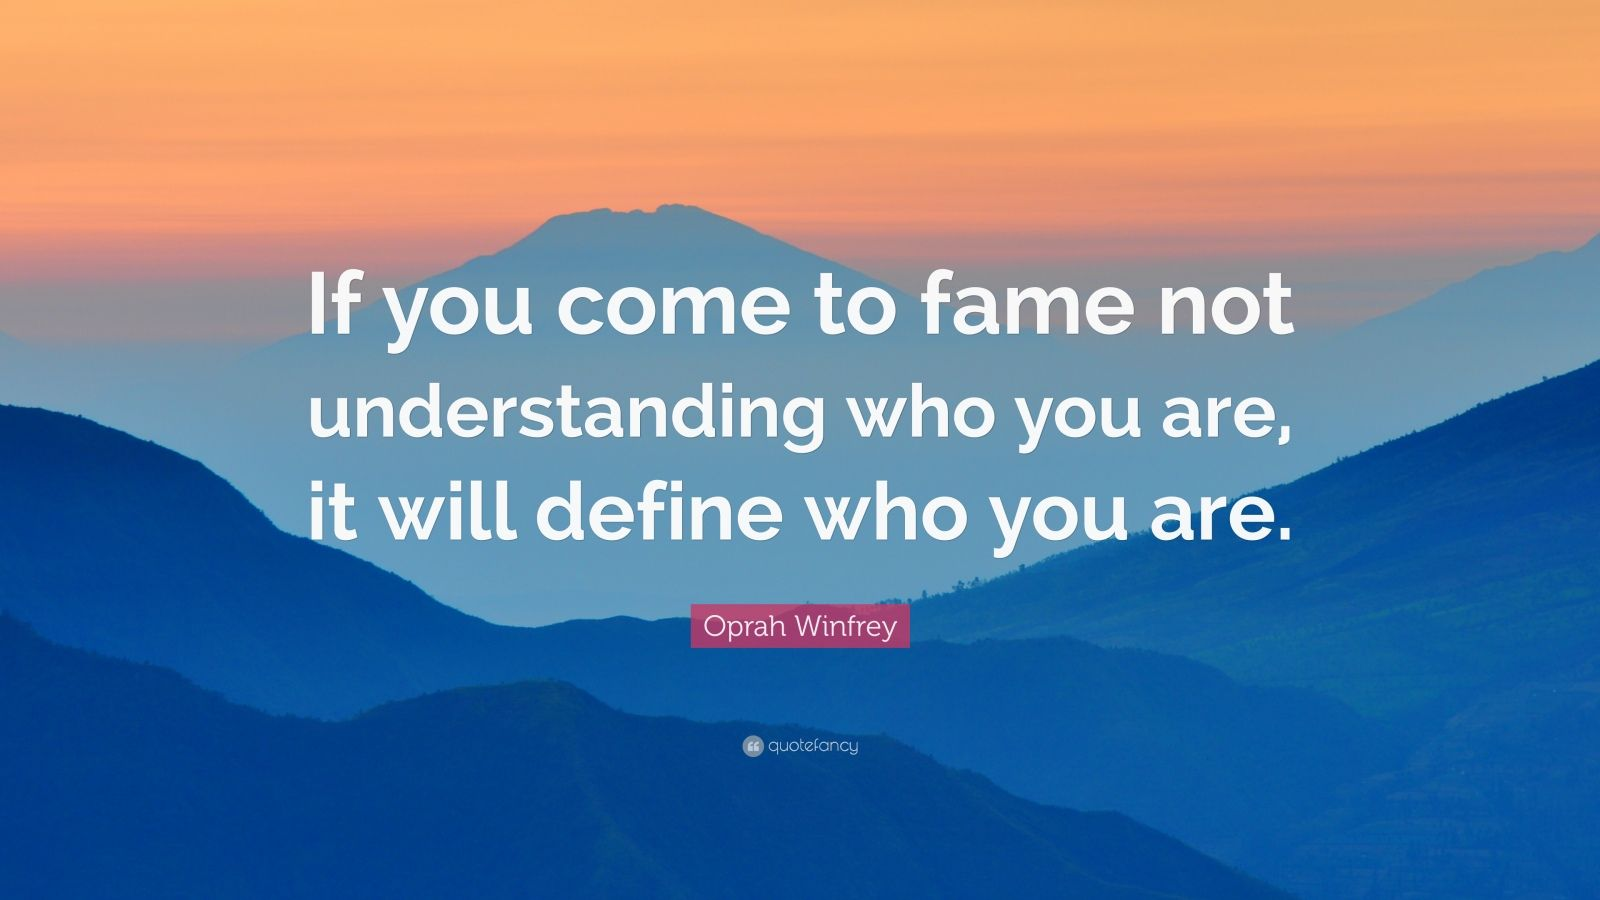 """Oprah Winfrey Quote: """"If you come to fame not understanding who you are, it will define who you are."""""""